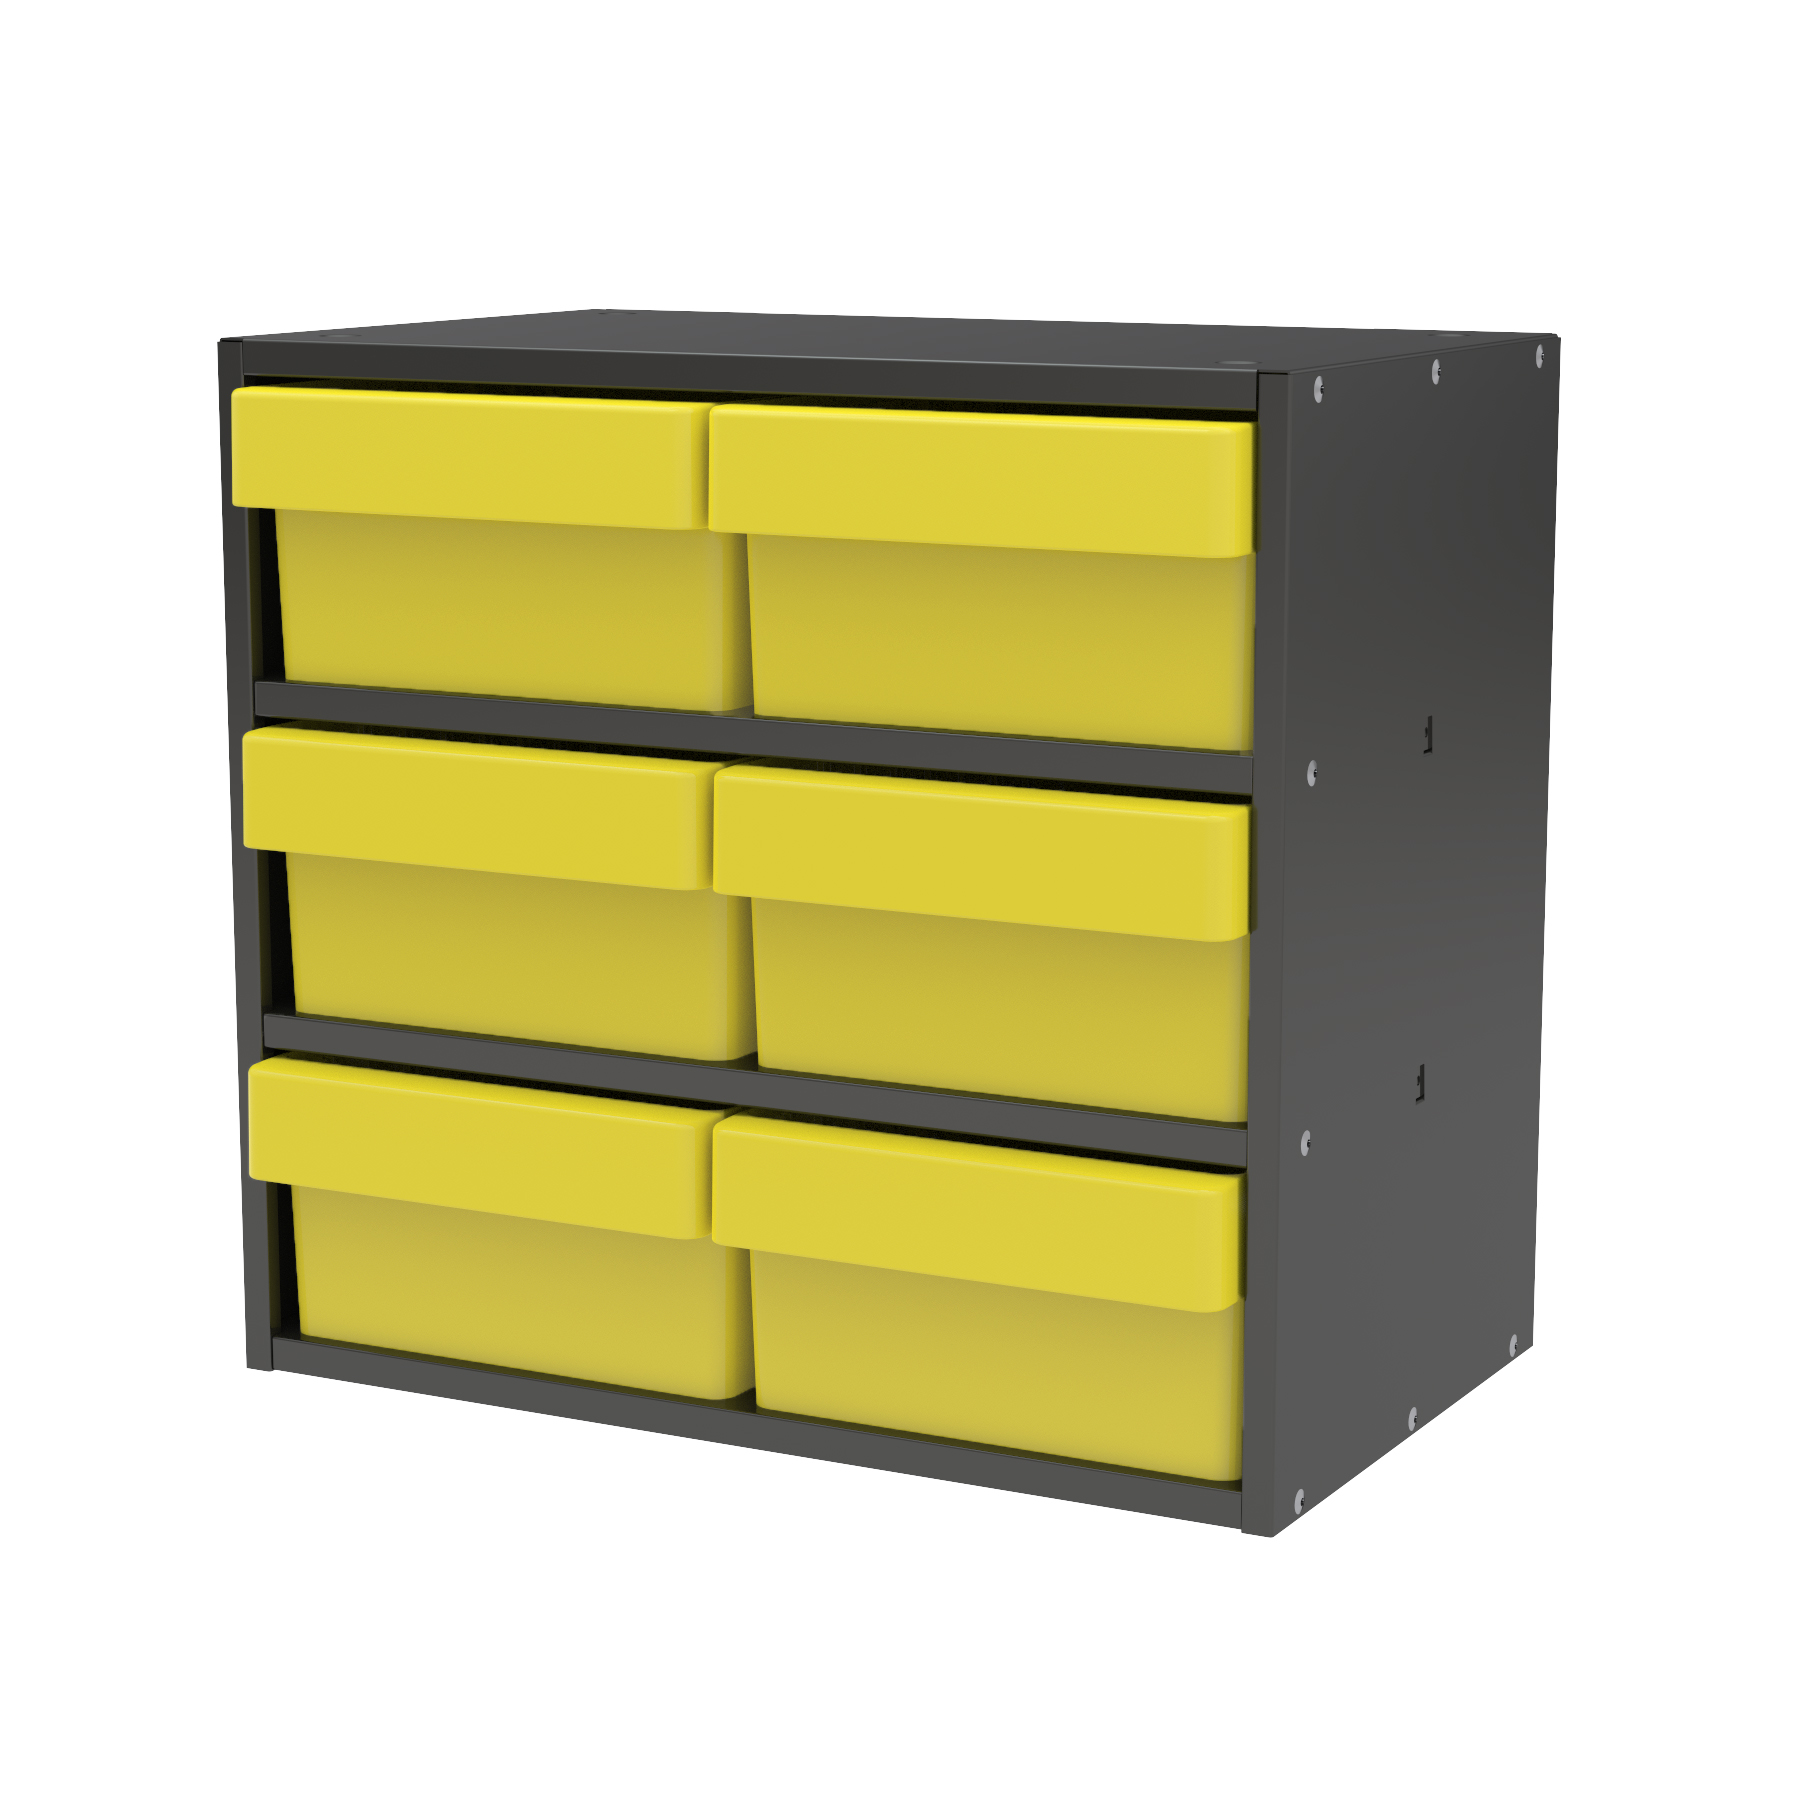 Item DISCONTINUED by Manufacturer.  Modular Cabinet, 18x11x16, 6 Drawers, Gray/Yellow (AD1811C82YEL).  This item sold in carton quantities of 1.